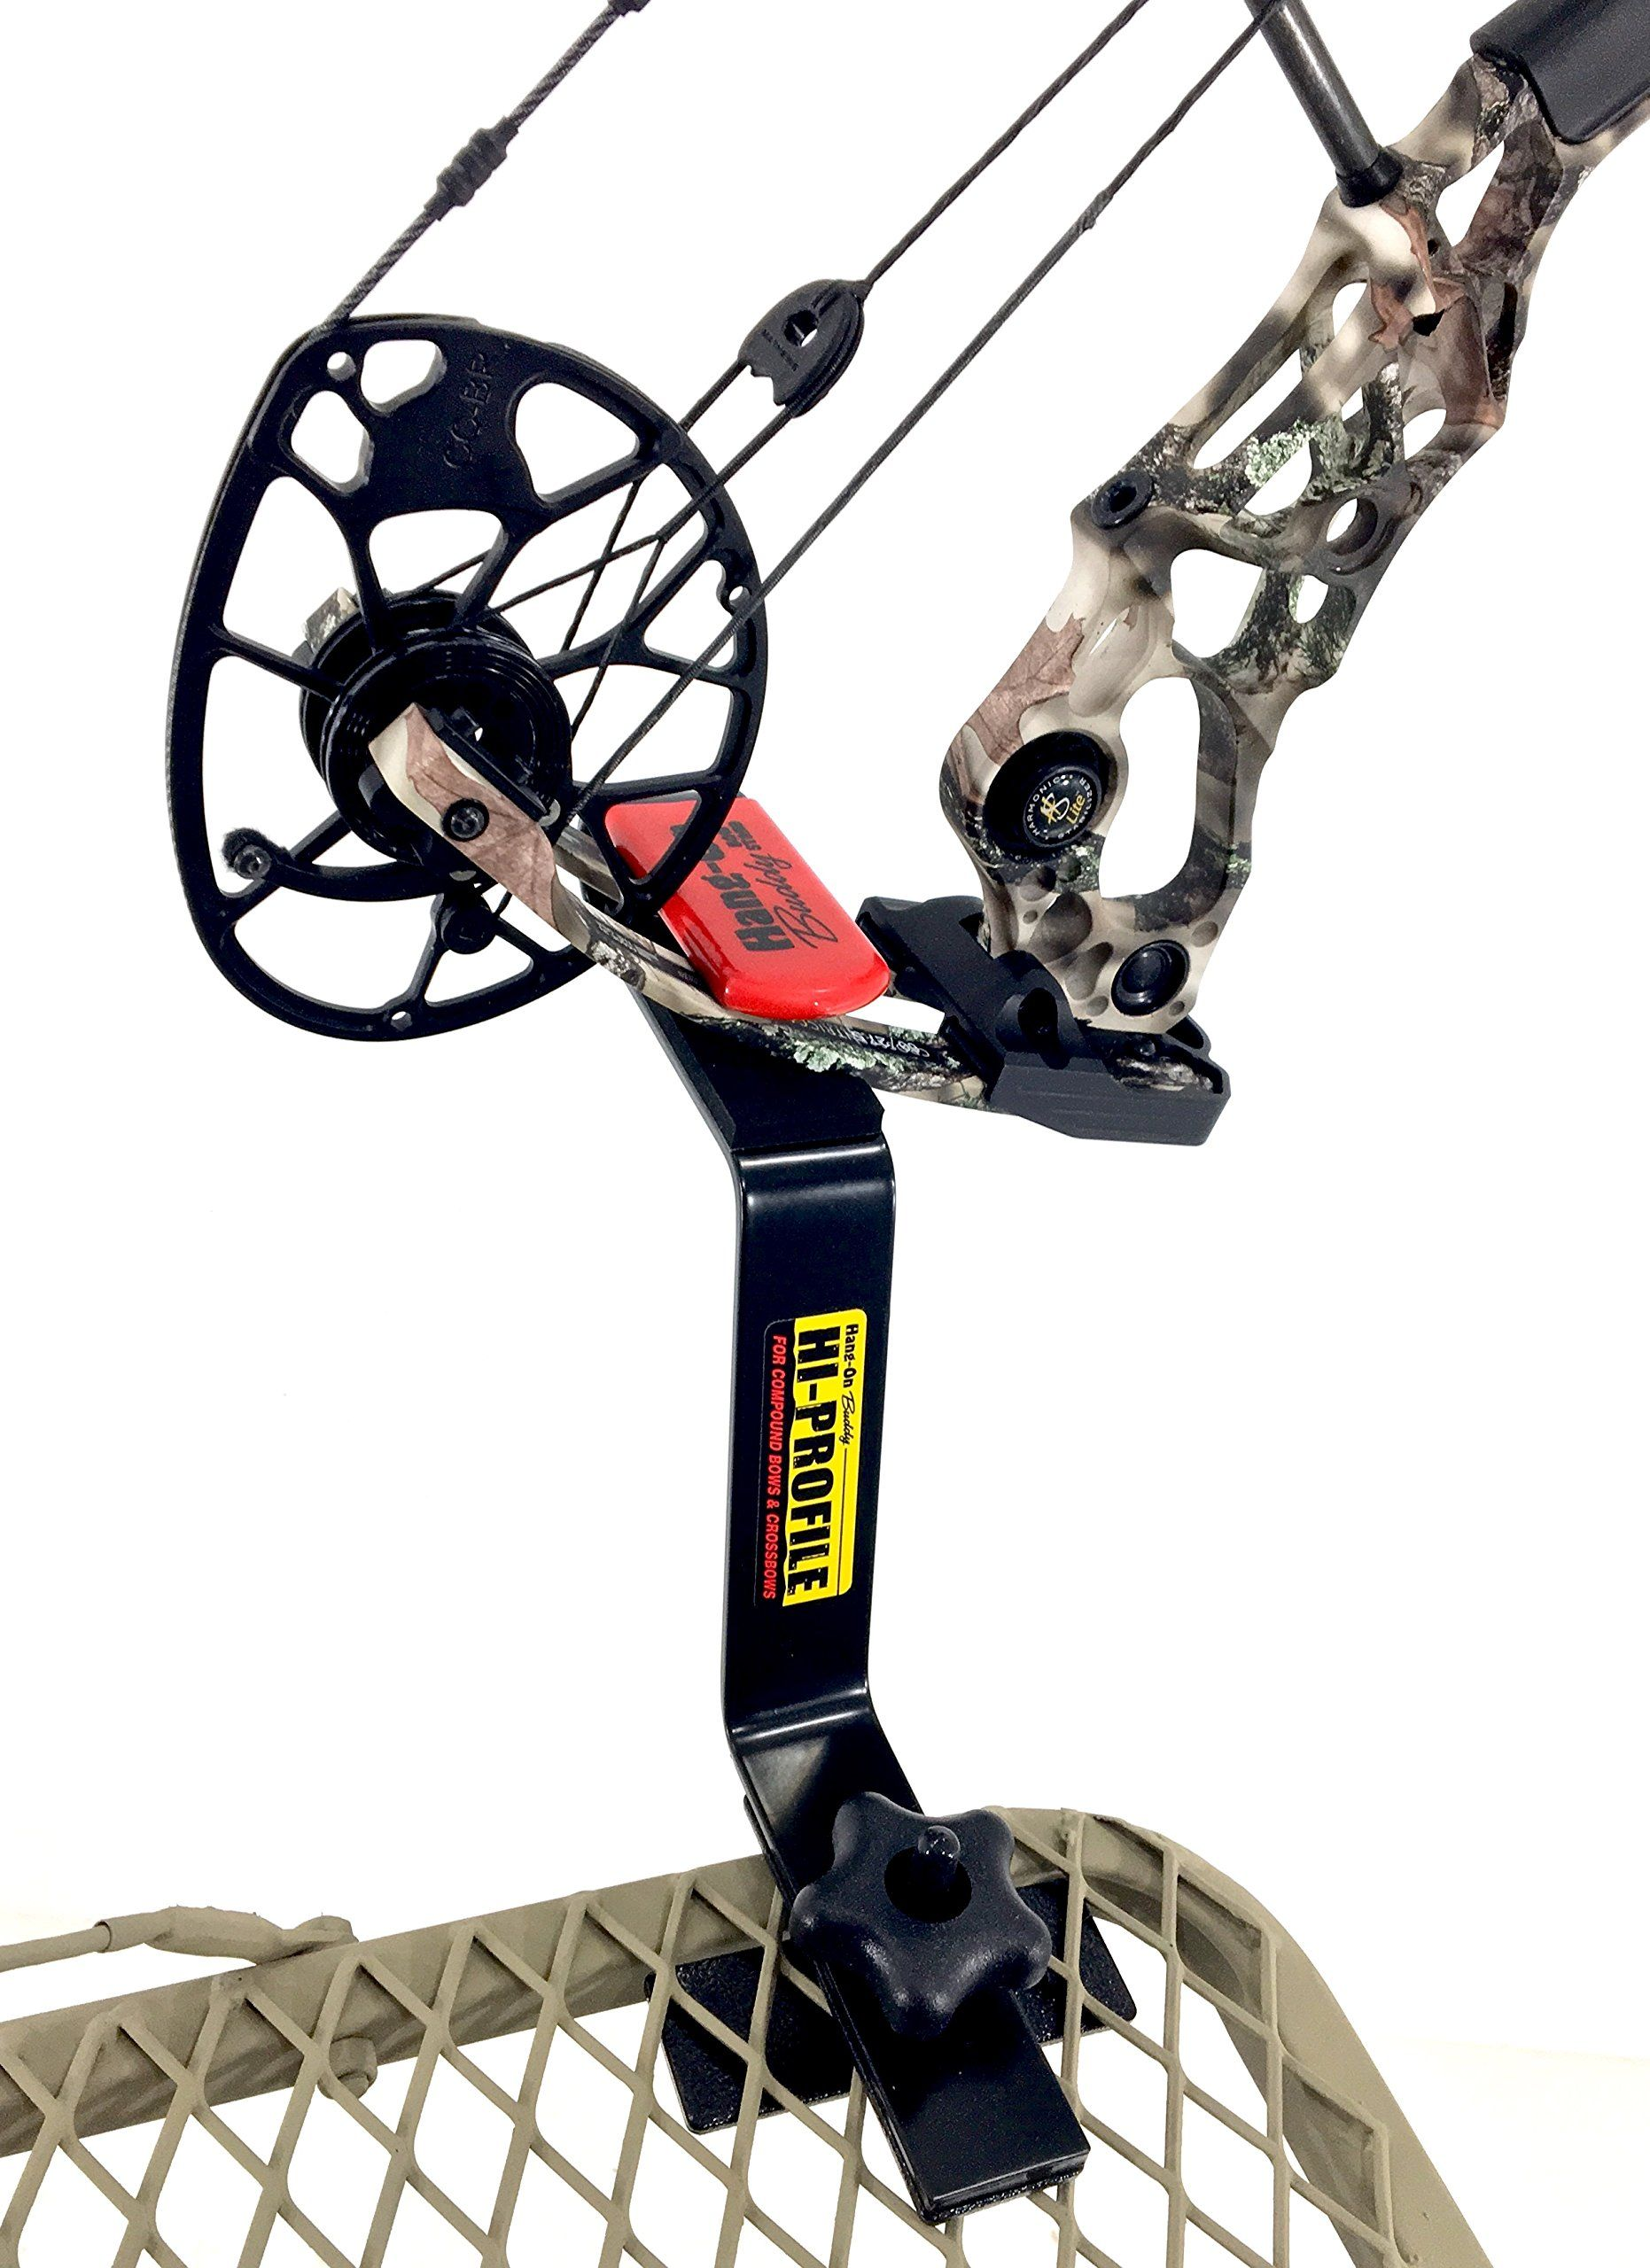 Bow Hanger Hangon Buddy Compound Bow Holder For Tree Stand Best Archery Bow H Hi Profile Learn More By Visiti Compound Bow Holder Compound Bow Bow Holder